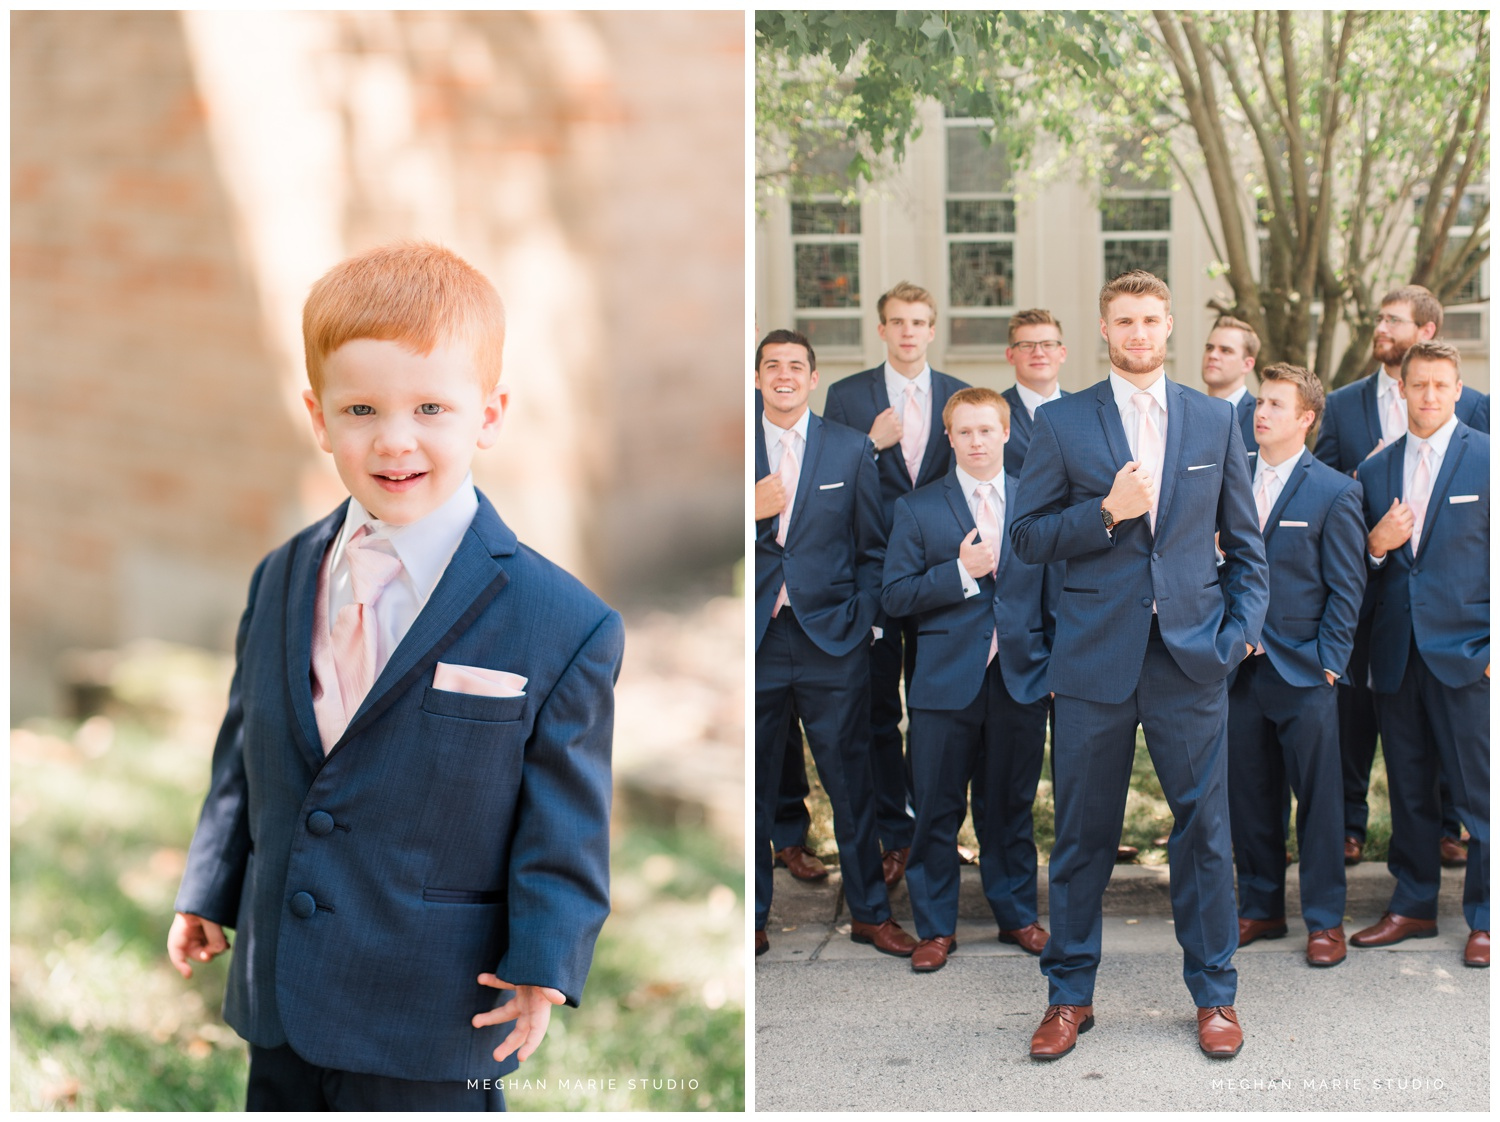 meghan marie studio ohio wedding kyle ahrens msu michigan state basketball spartans navy blush rustic barn soft warm bright bubbles catholic church_0367.jpg